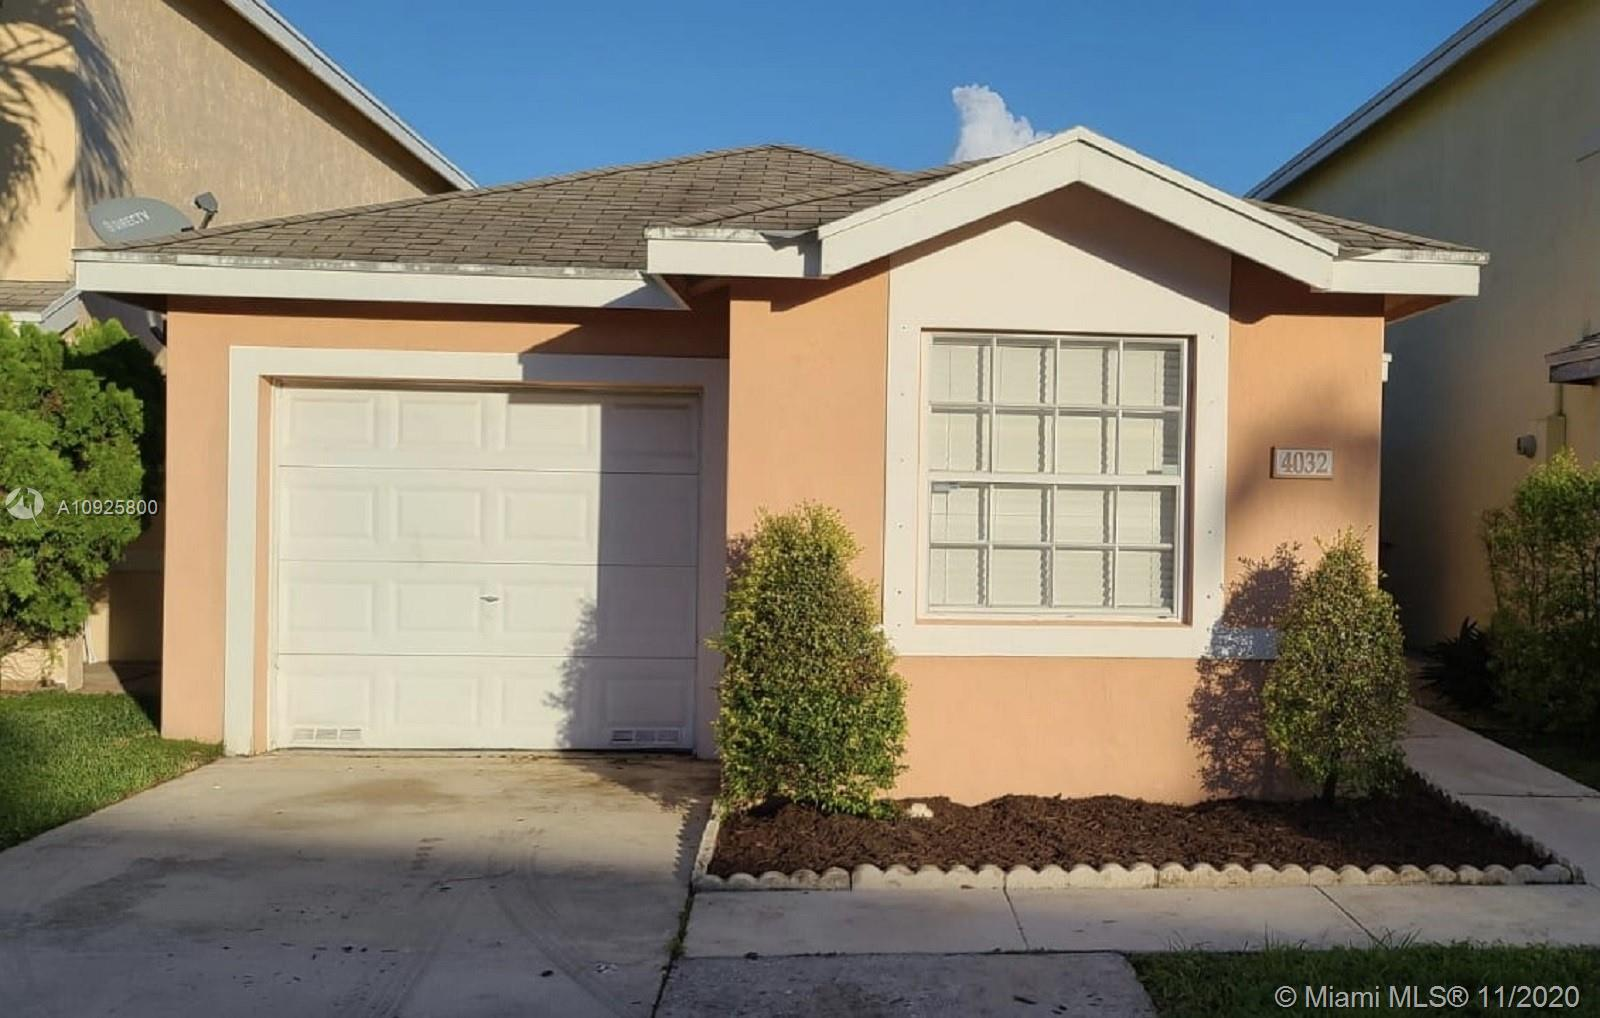 Great 2 bedroom, 2 bath single family with lake view, garage converted to a 3rd bedroom, split floor plan, open kitchen to the dining/living room, tile floors and brand new a/c unit. Community with swimming pool.  First time home buyers welcome or investors.